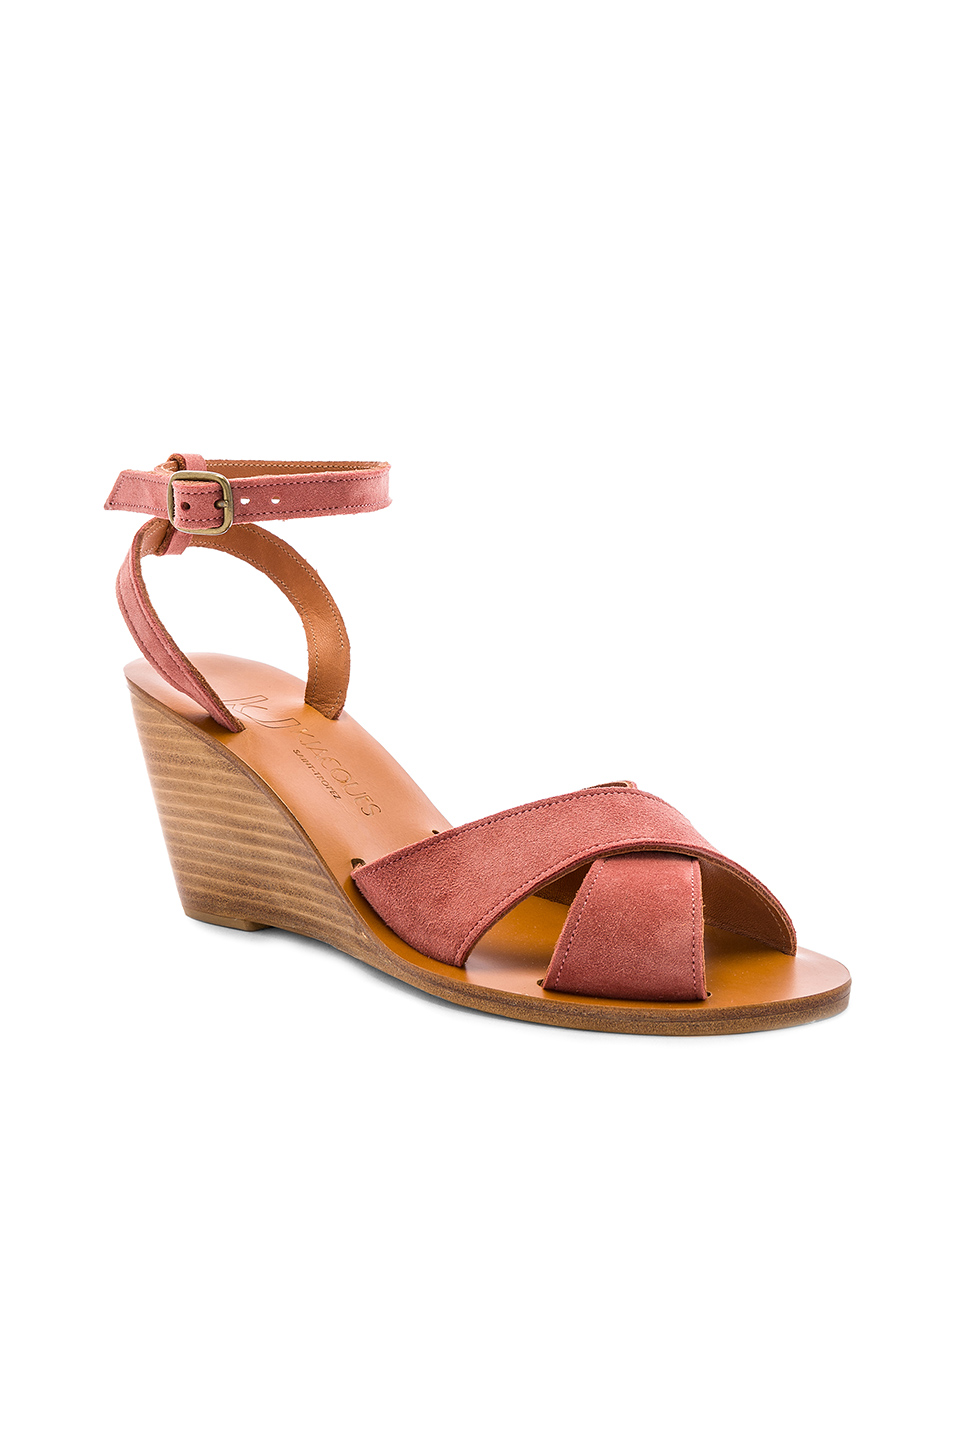 K Jacques Alicia Wedge